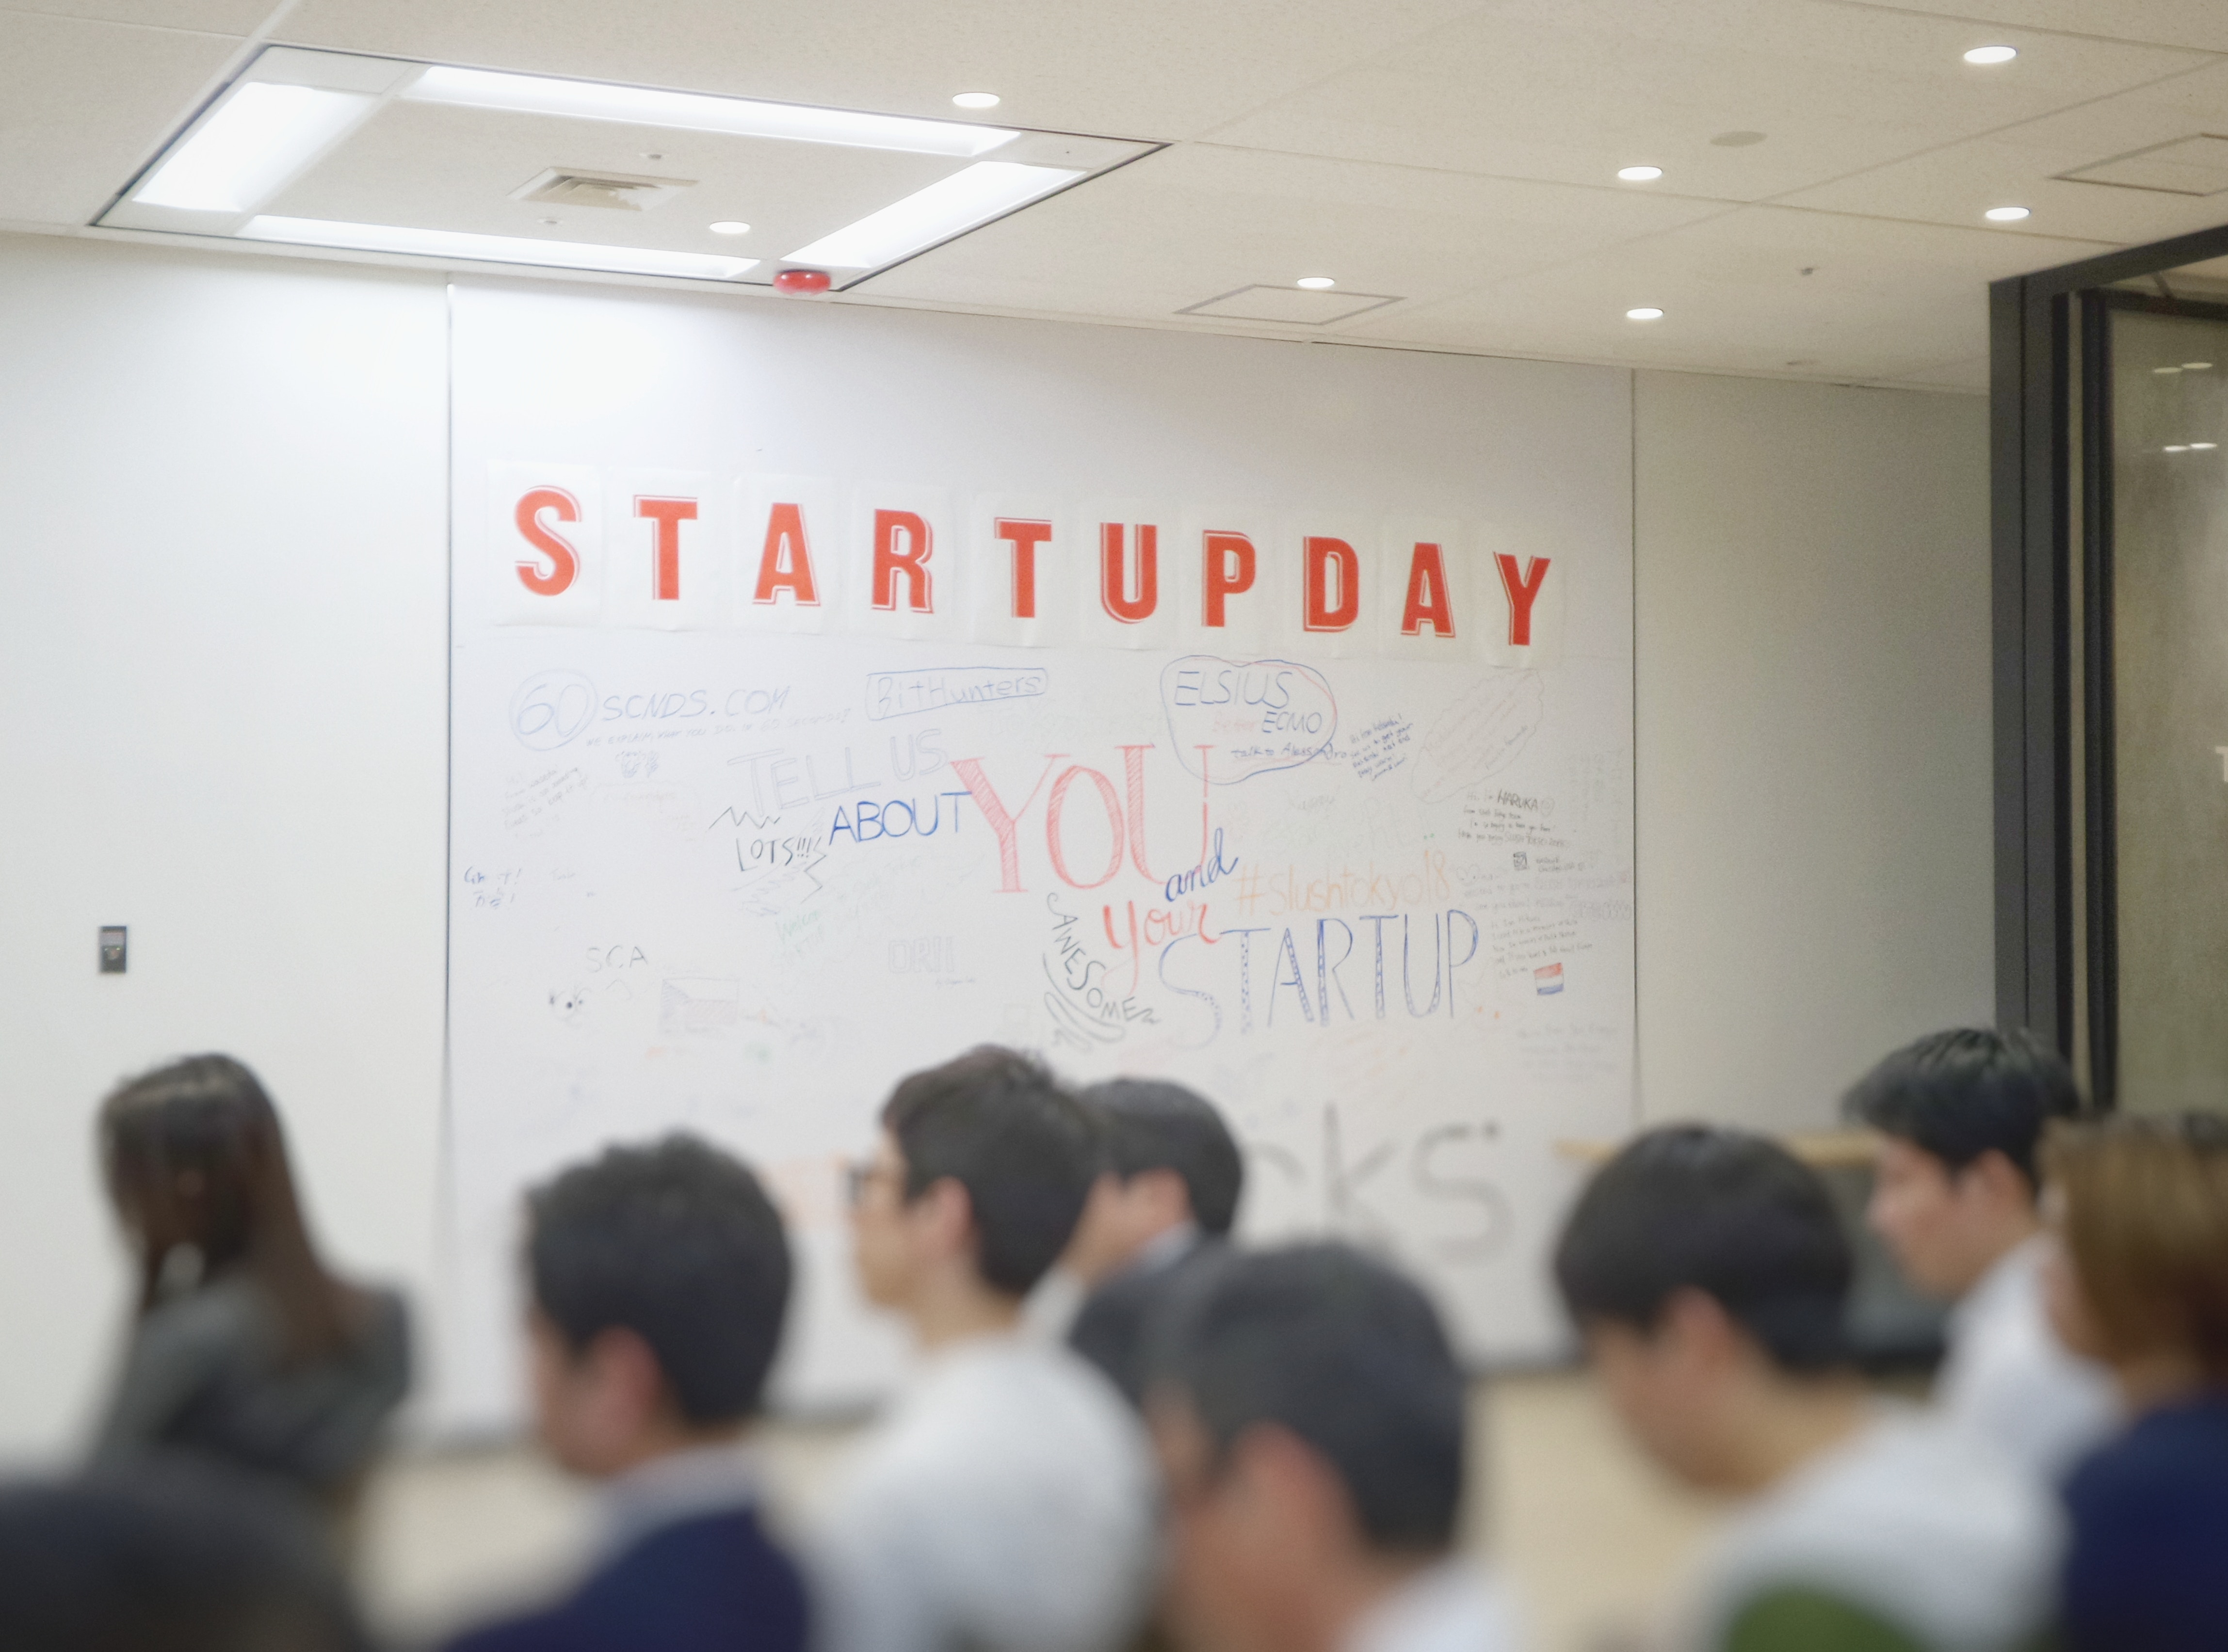 startup day and launch plan image